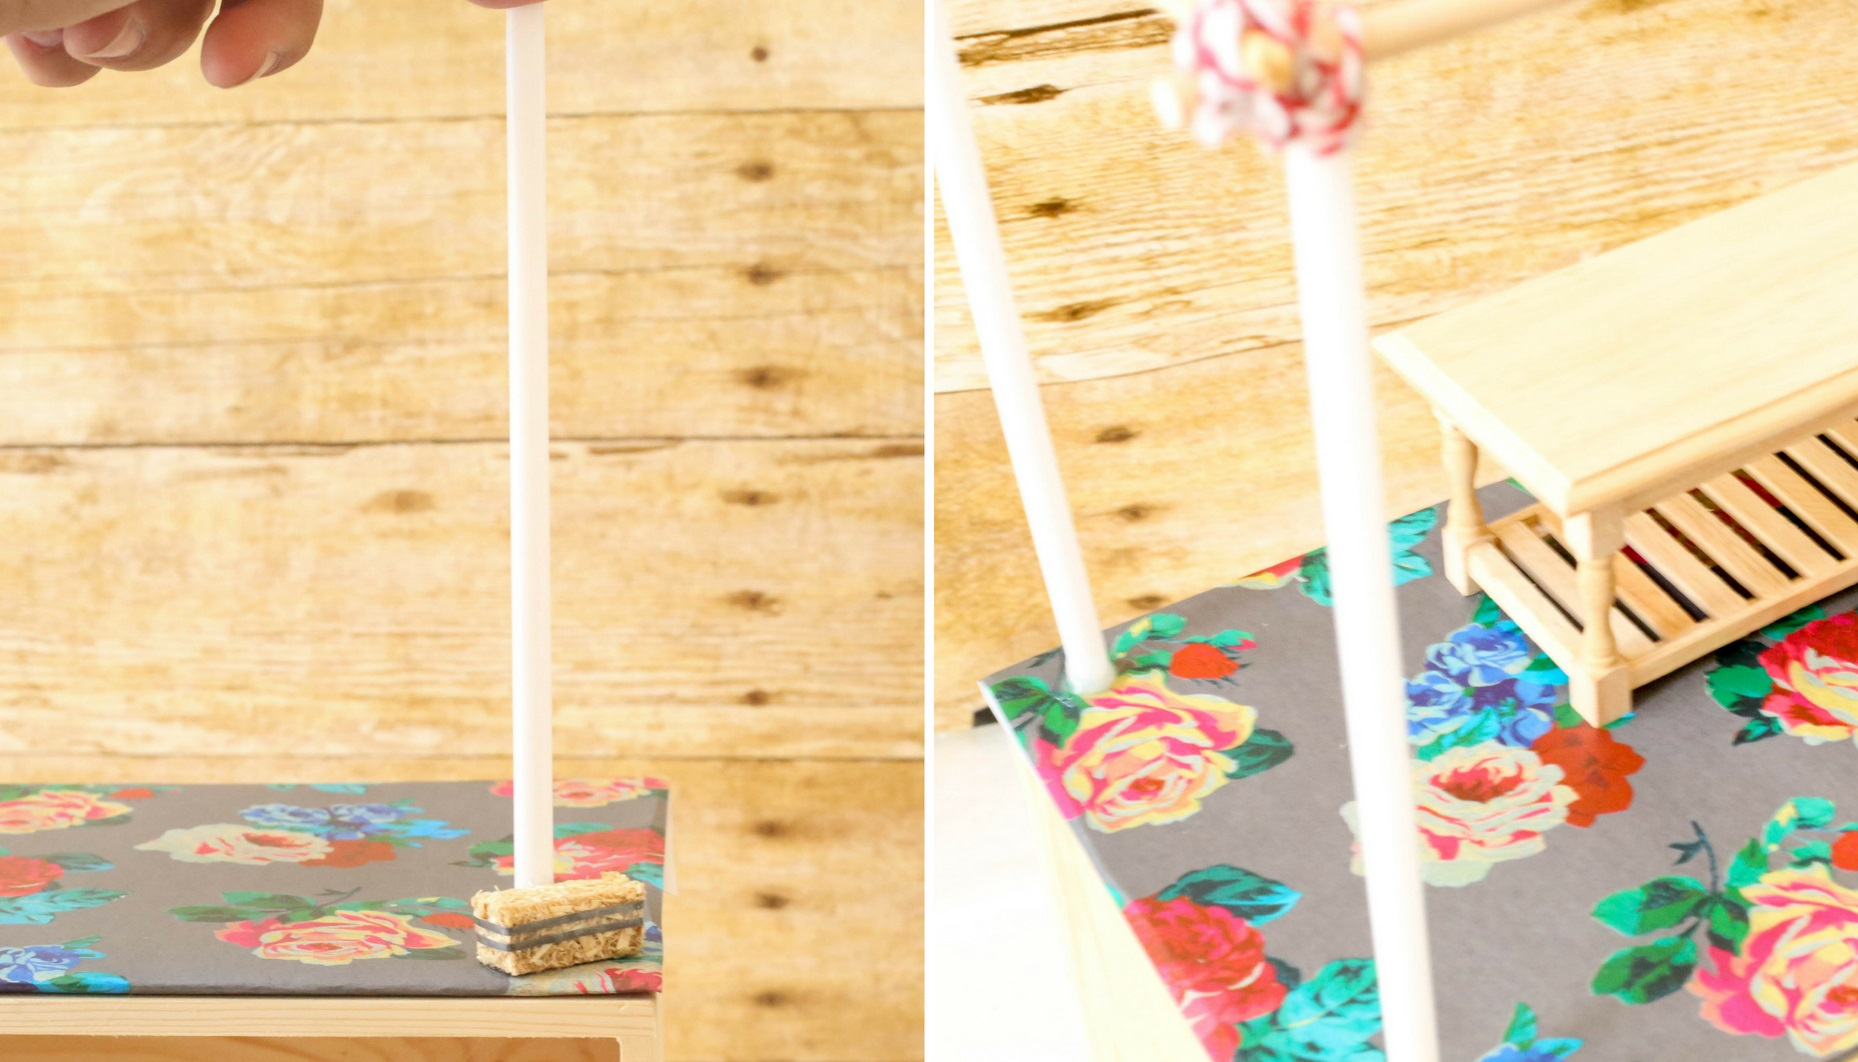 Tip: Hold the straw in place until the hot glue cools, this will help hold the position.